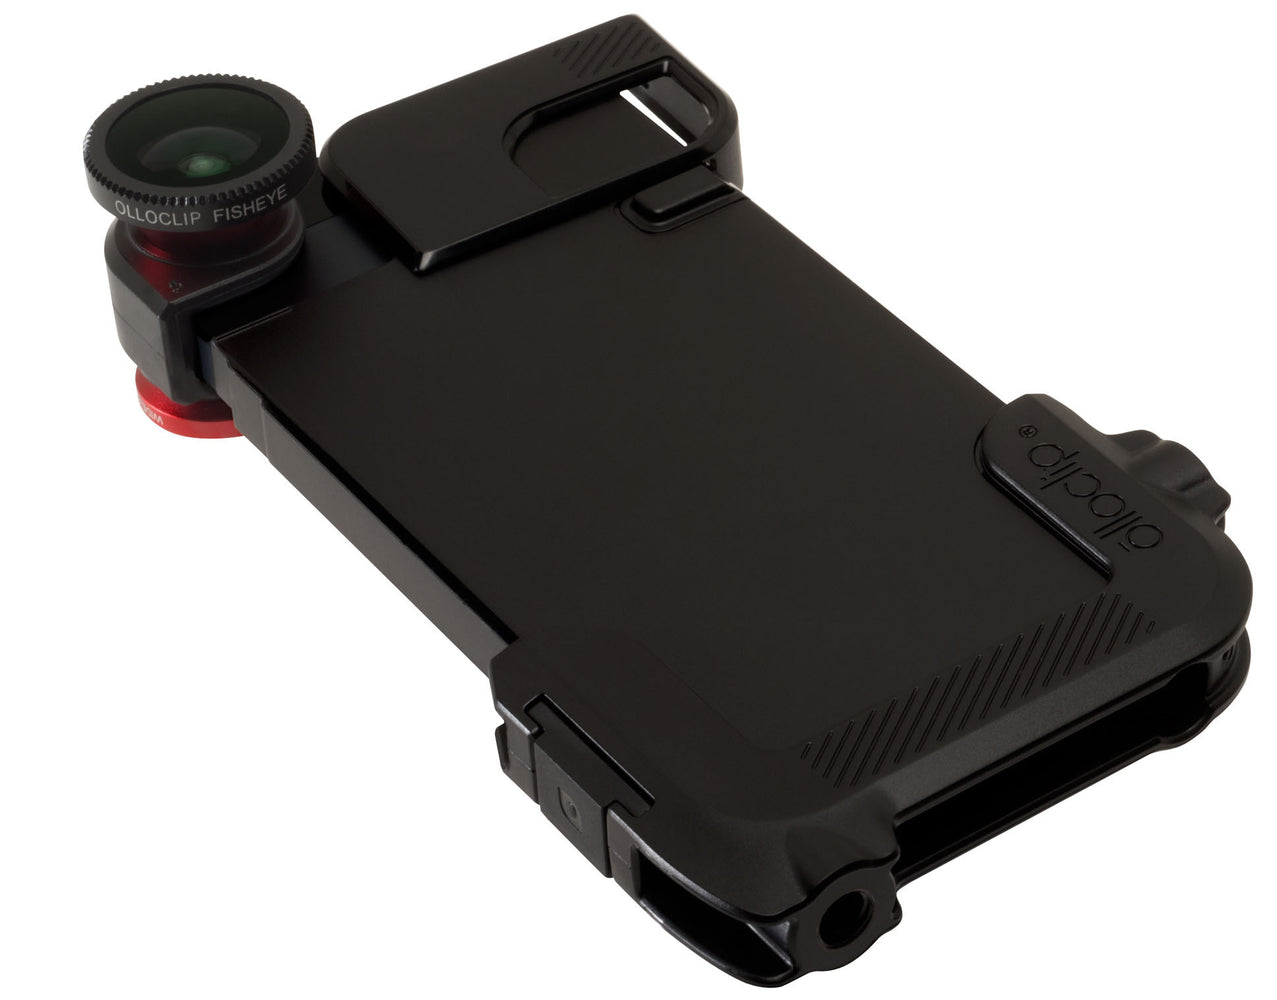 olloclip Quick Flip Case And Pro Photo Adapter For iPhone 4s/4